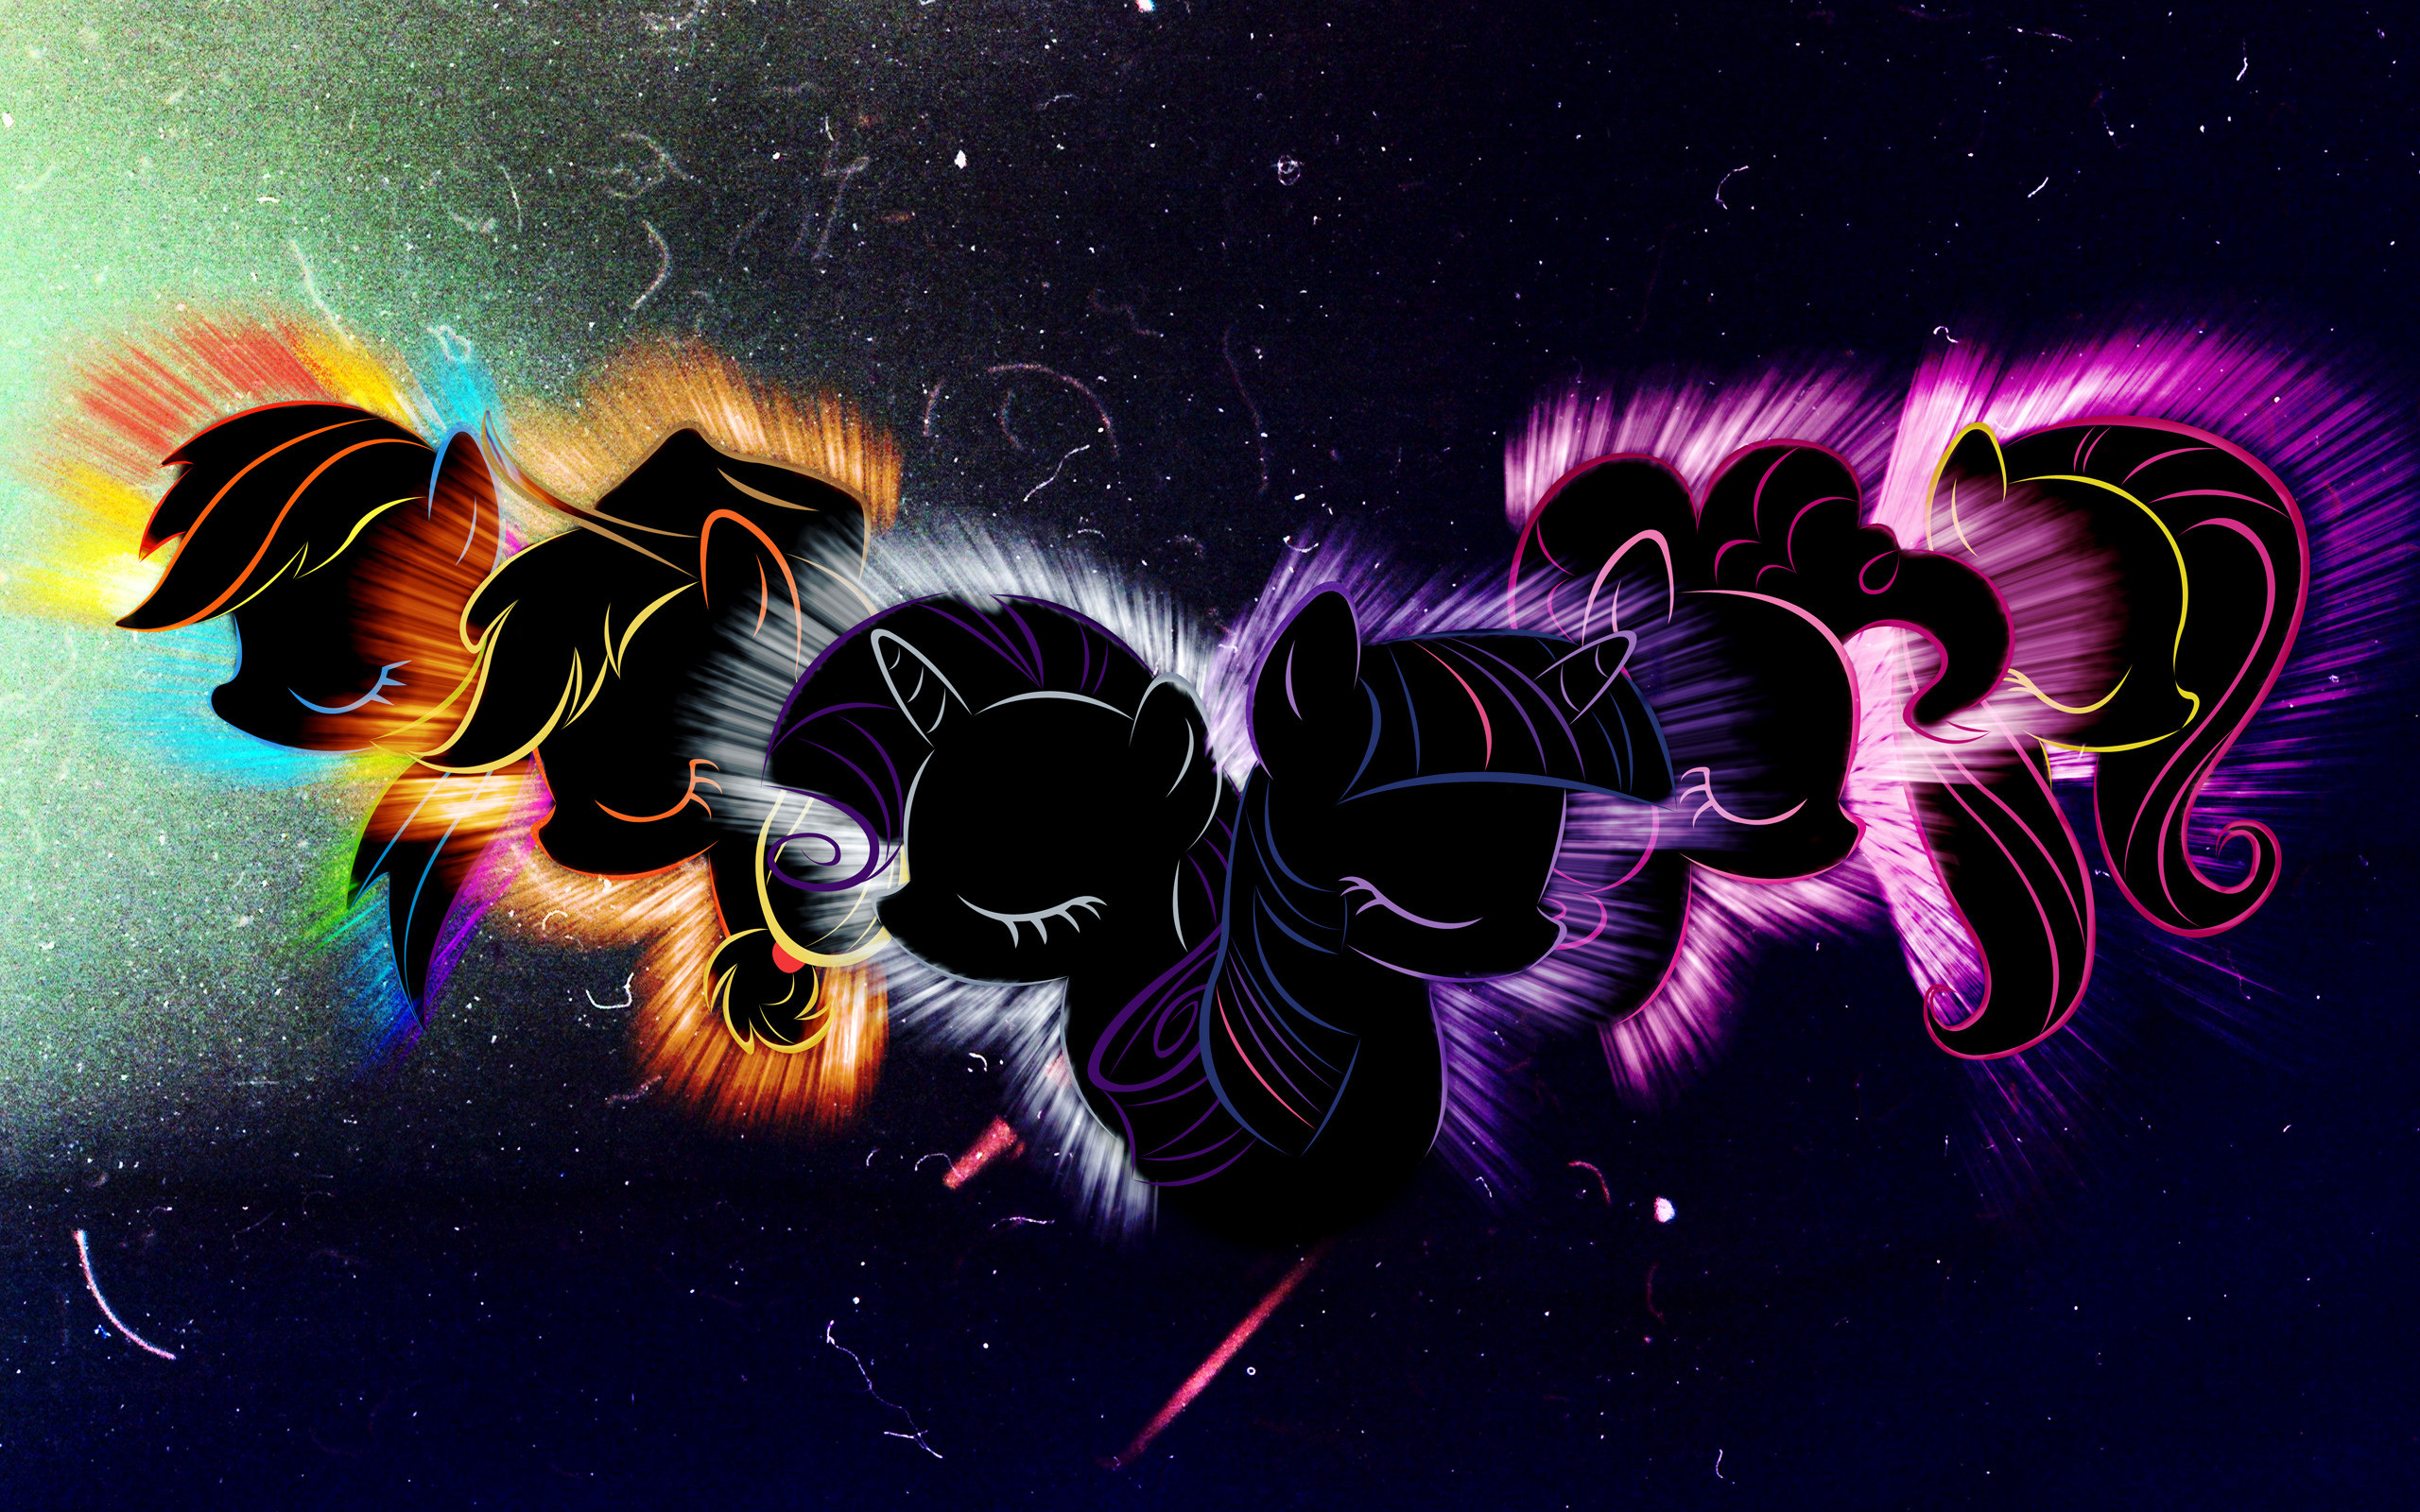 2560x1600 Pony Wallpapers - My Little Pony Friendship is Magic Wallpaper .